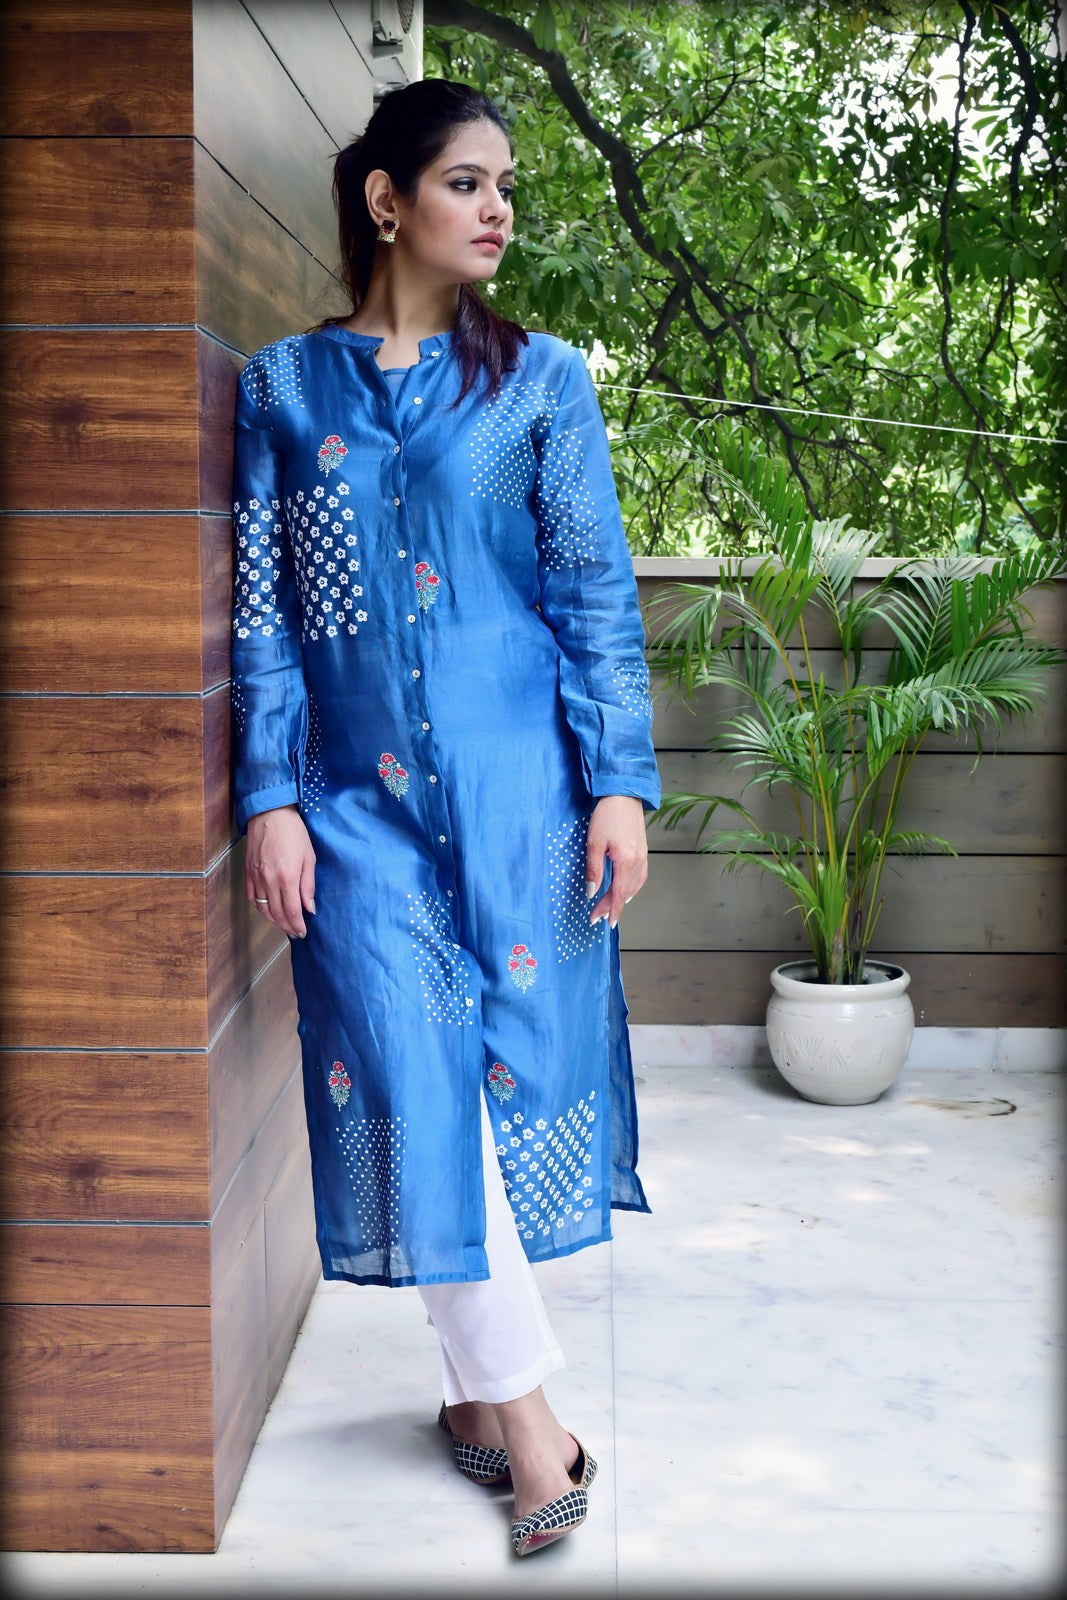 Blue White Hand Block Printed Kurta & Palazo - Set of 2 - label shreya gupta